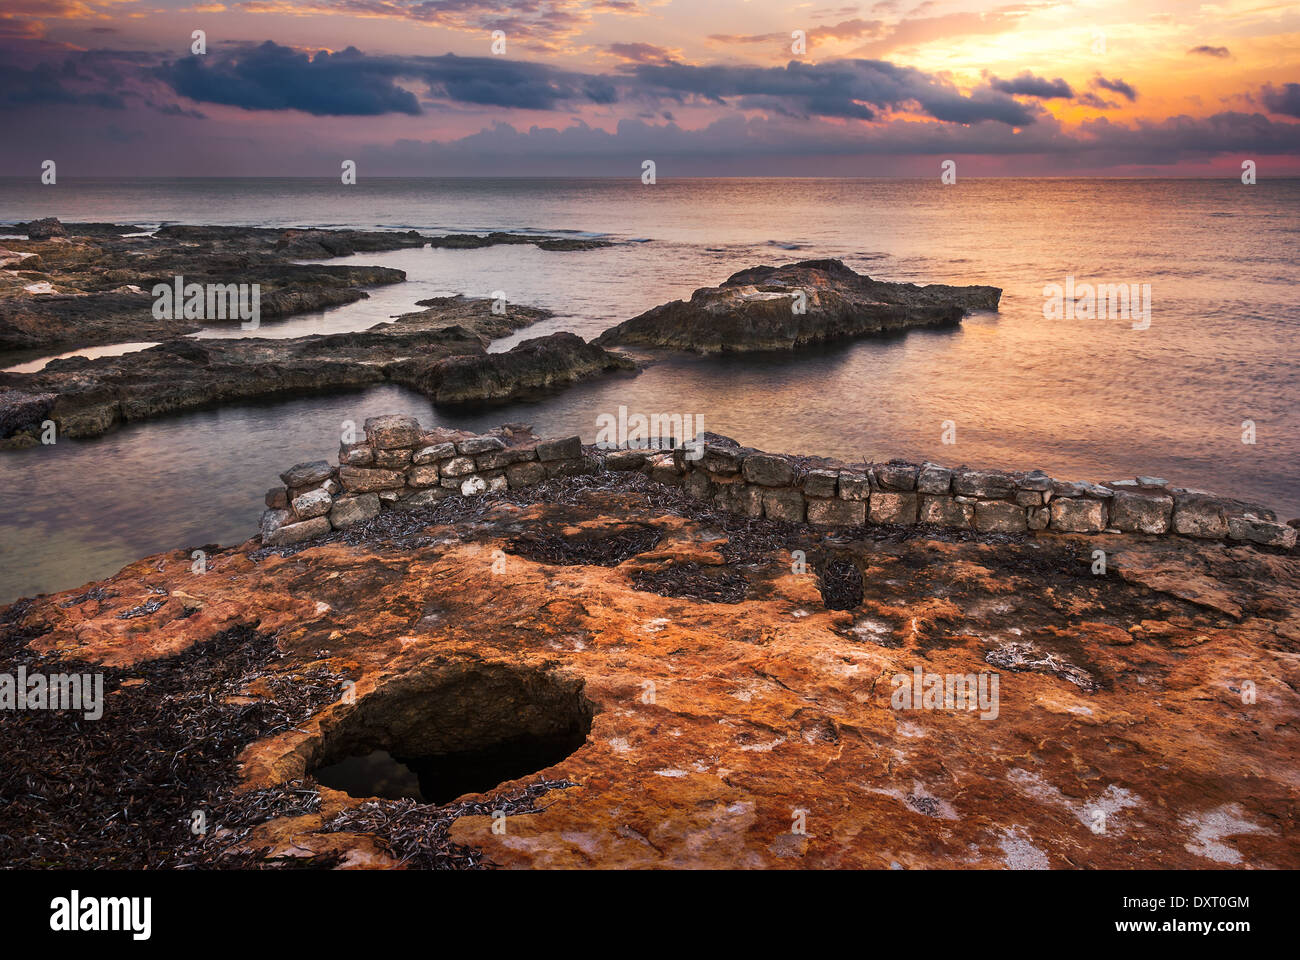 Sunset over the Sea and Rocky Coast with Ancient Ruins in Mahdia, Tunisia Stock Photo